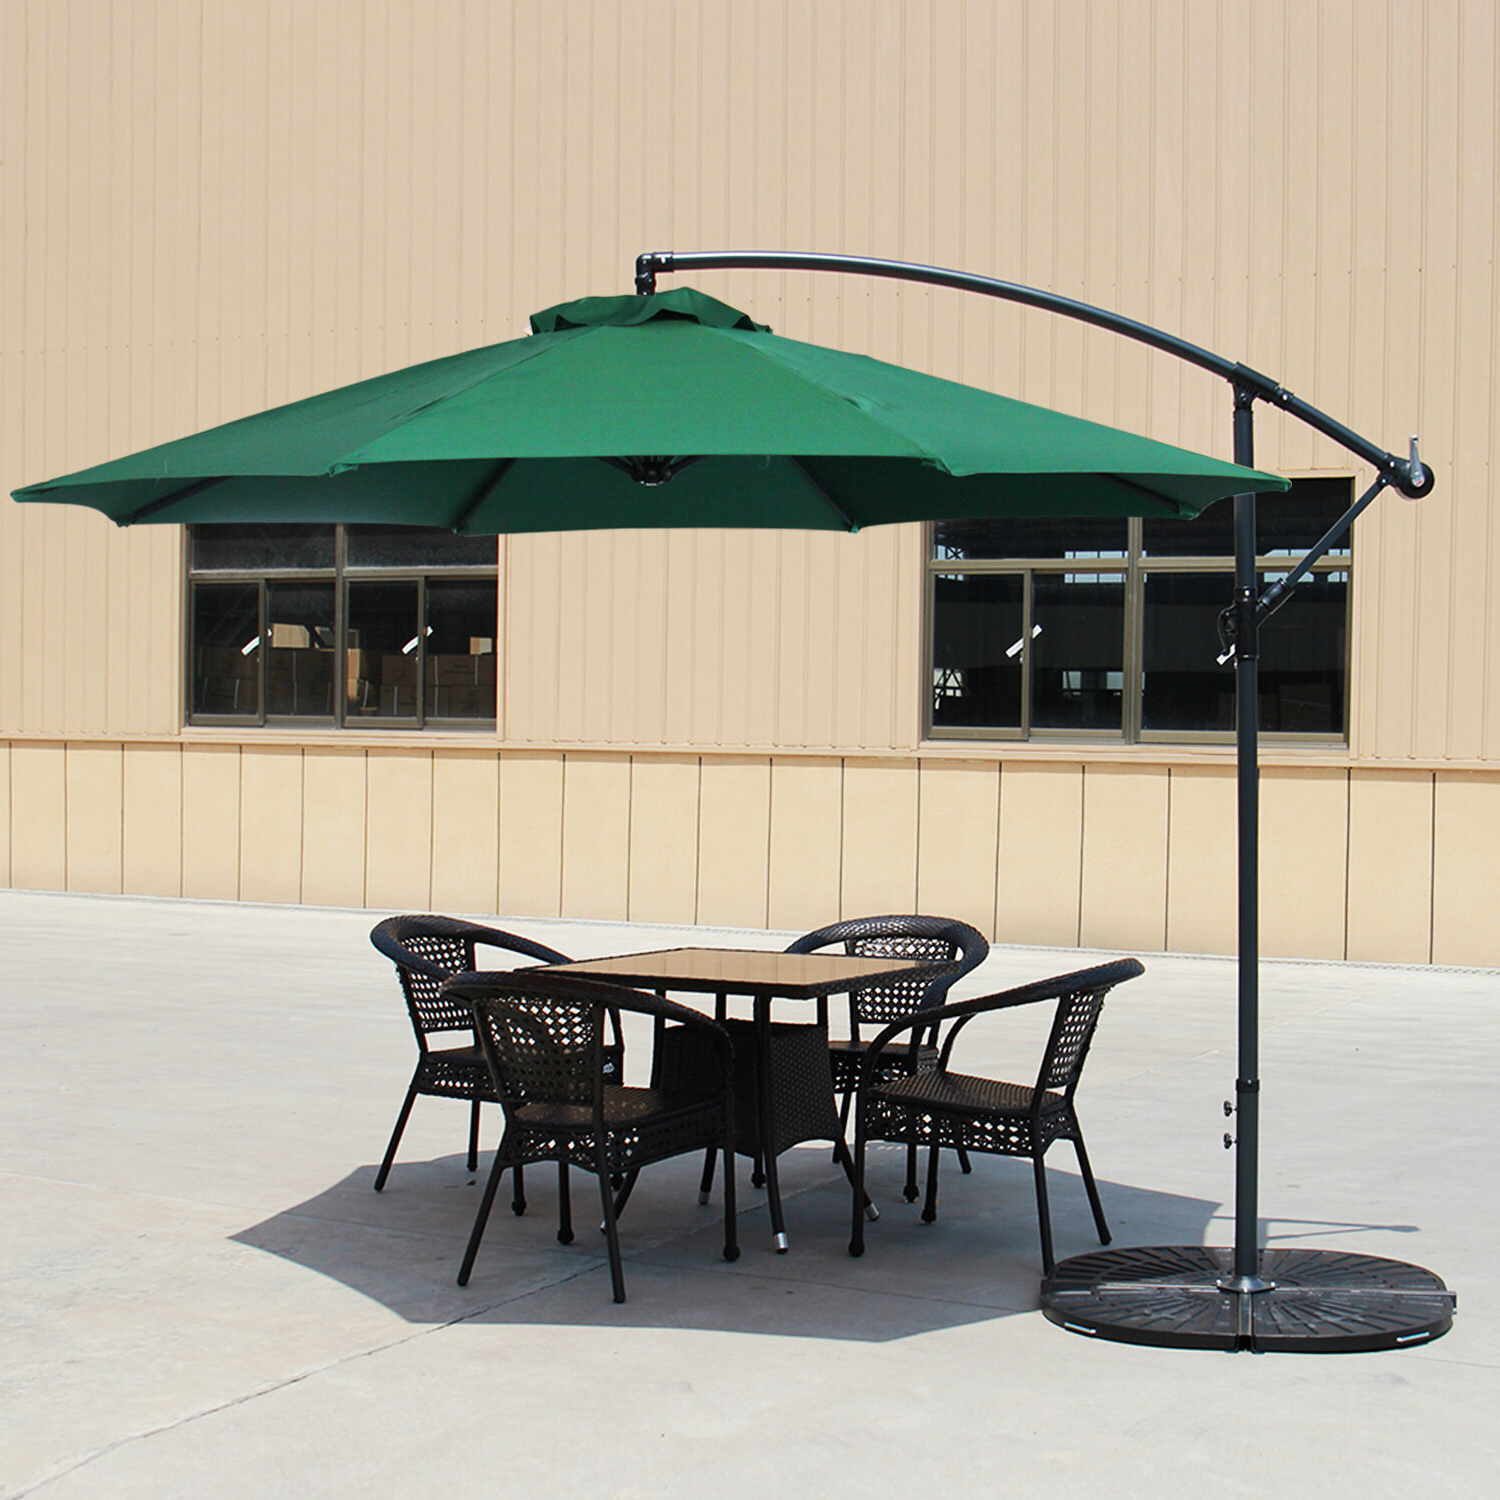 Scott 10' Cantilever Umbrella Intended For Best And Newest Imogen Hanging Offset Cantilever Umbrellas (View 16 of 20)